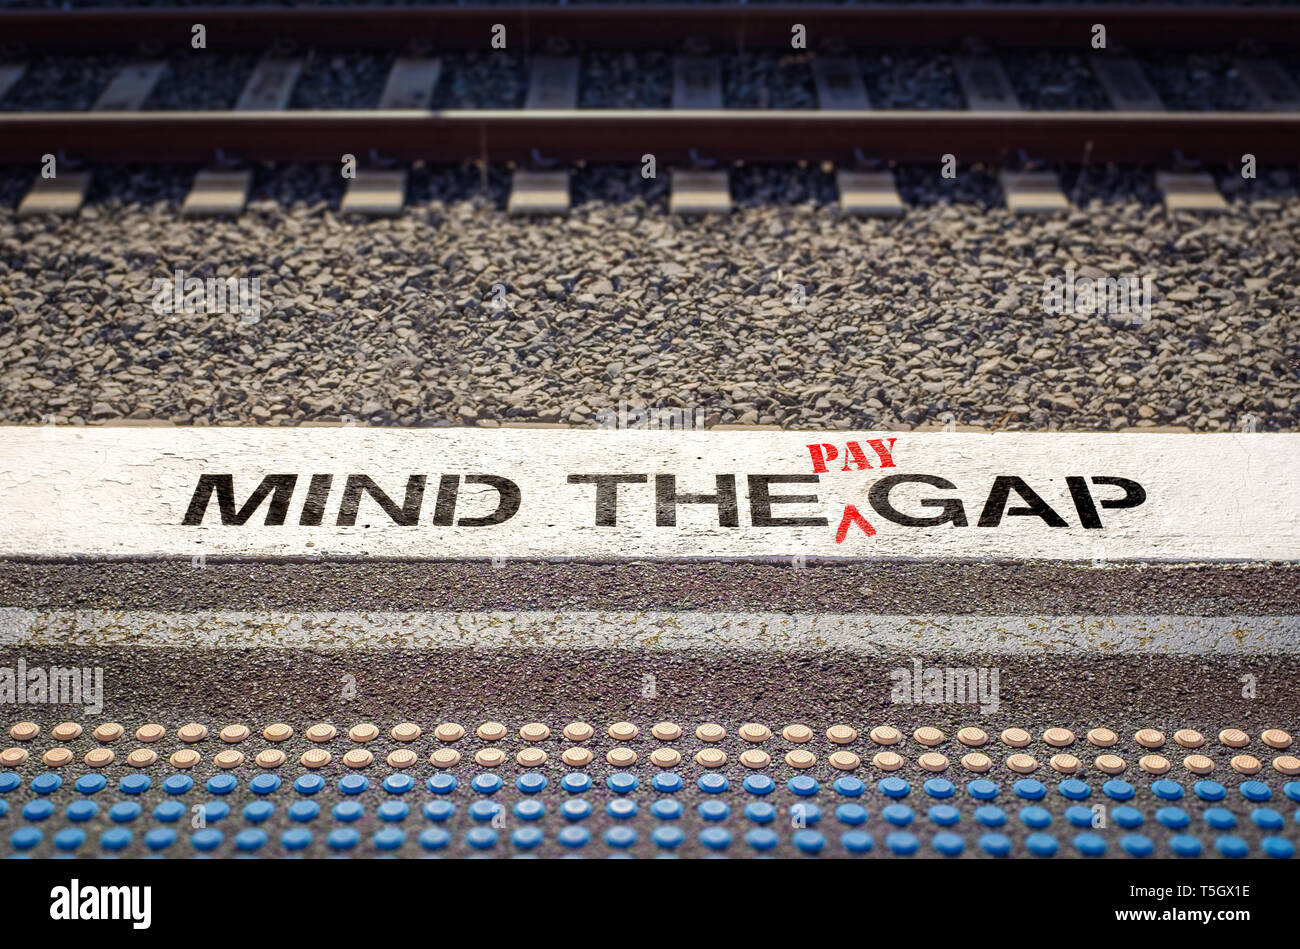 Pay gap, mind the pay gap graffiti inequality in pay between employees and bosses pay concept – image - Stock Image